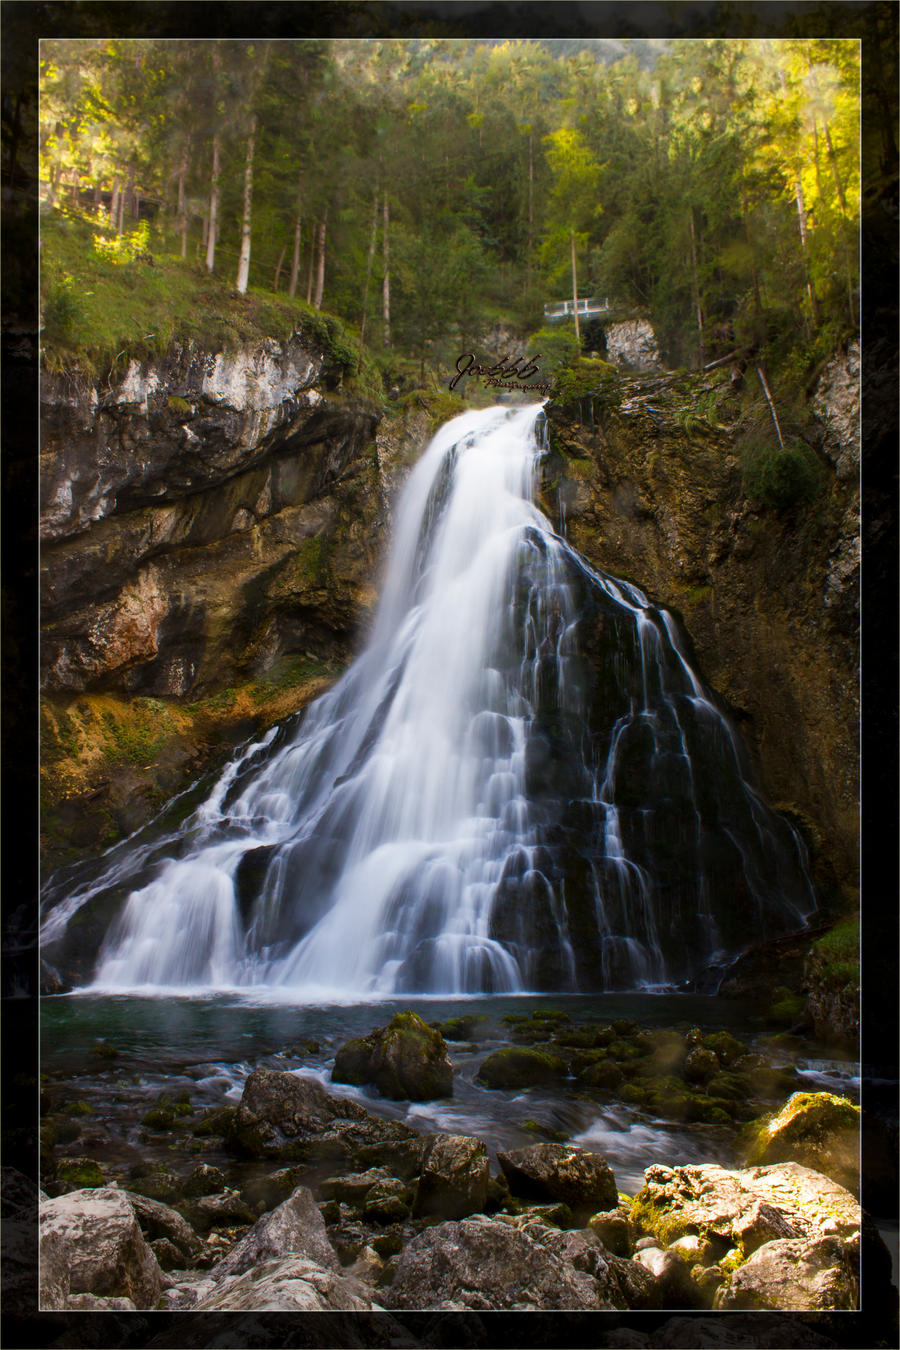 Golling waterfall 1 by deaconfrost78